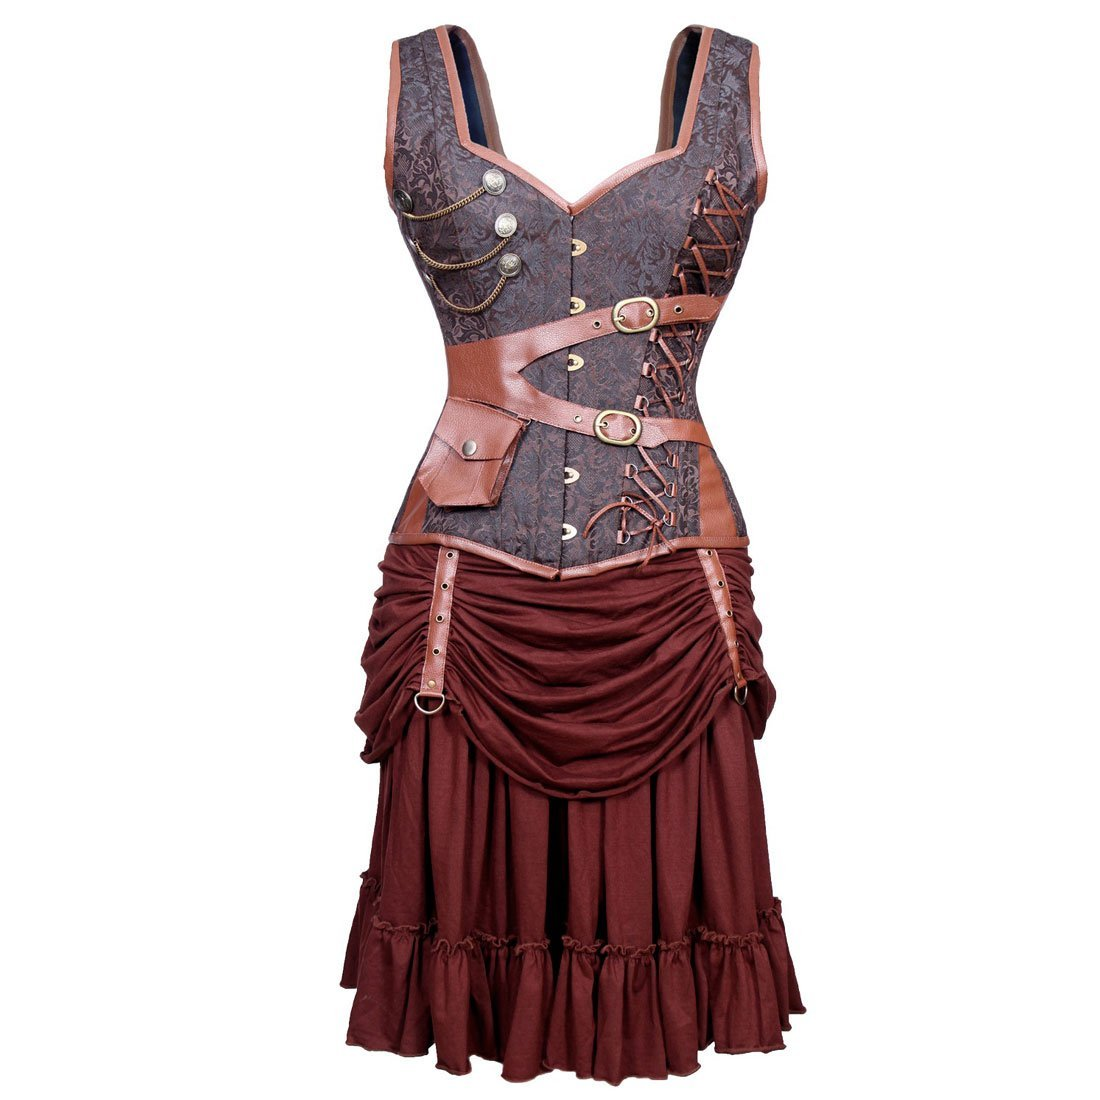 Steampunk Adventurer Corset Dress